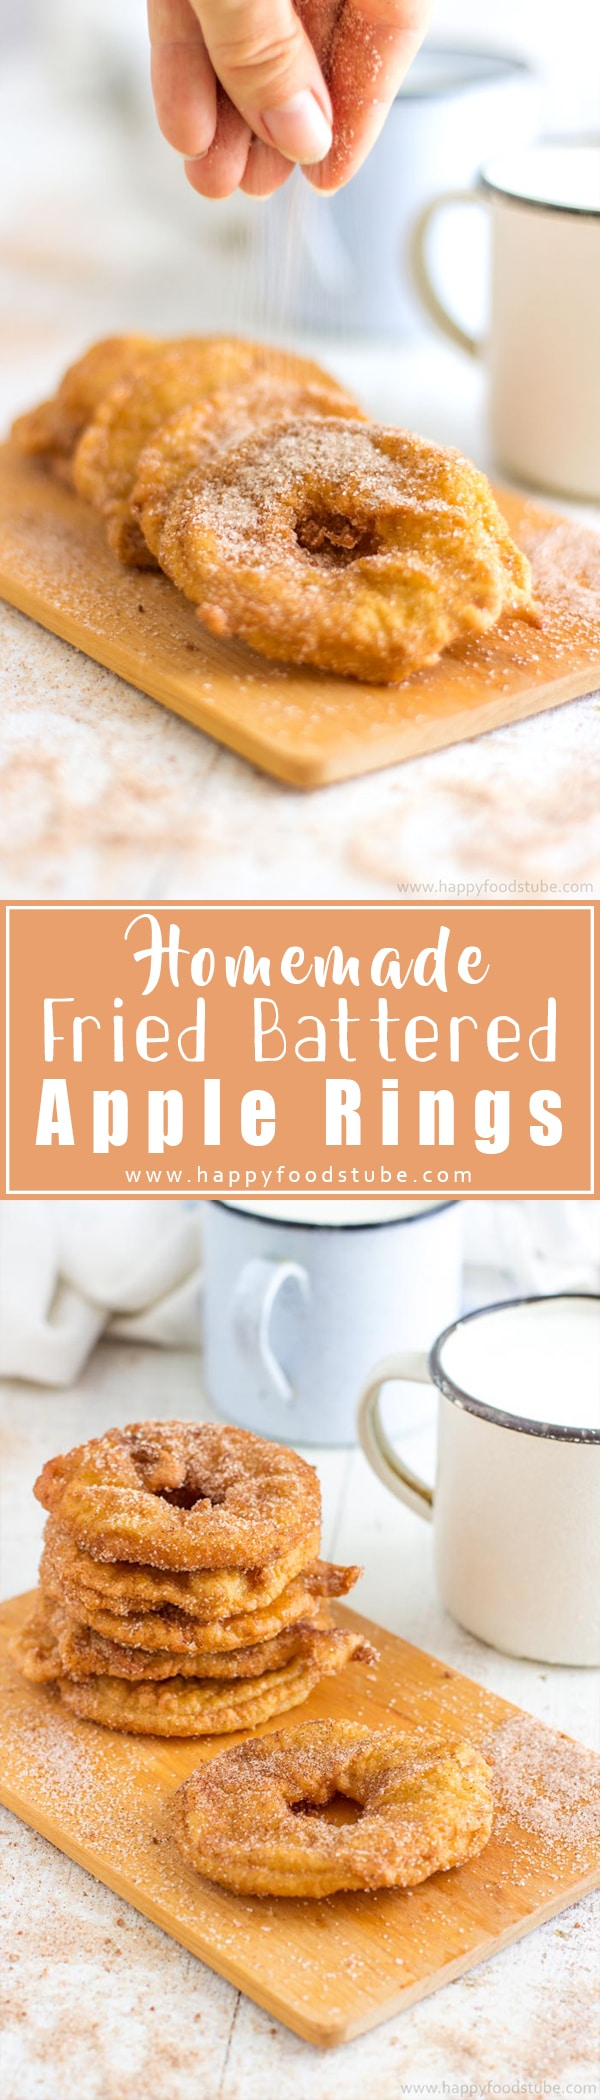 Homemade Fried Battered Apple Rings are simple yet mouth-watering treat. Apple slices dipped in batter, deep-fried & coated in cinnamon sugar. Family favorite dessert recipe, ready in 15 minutes. #applerings